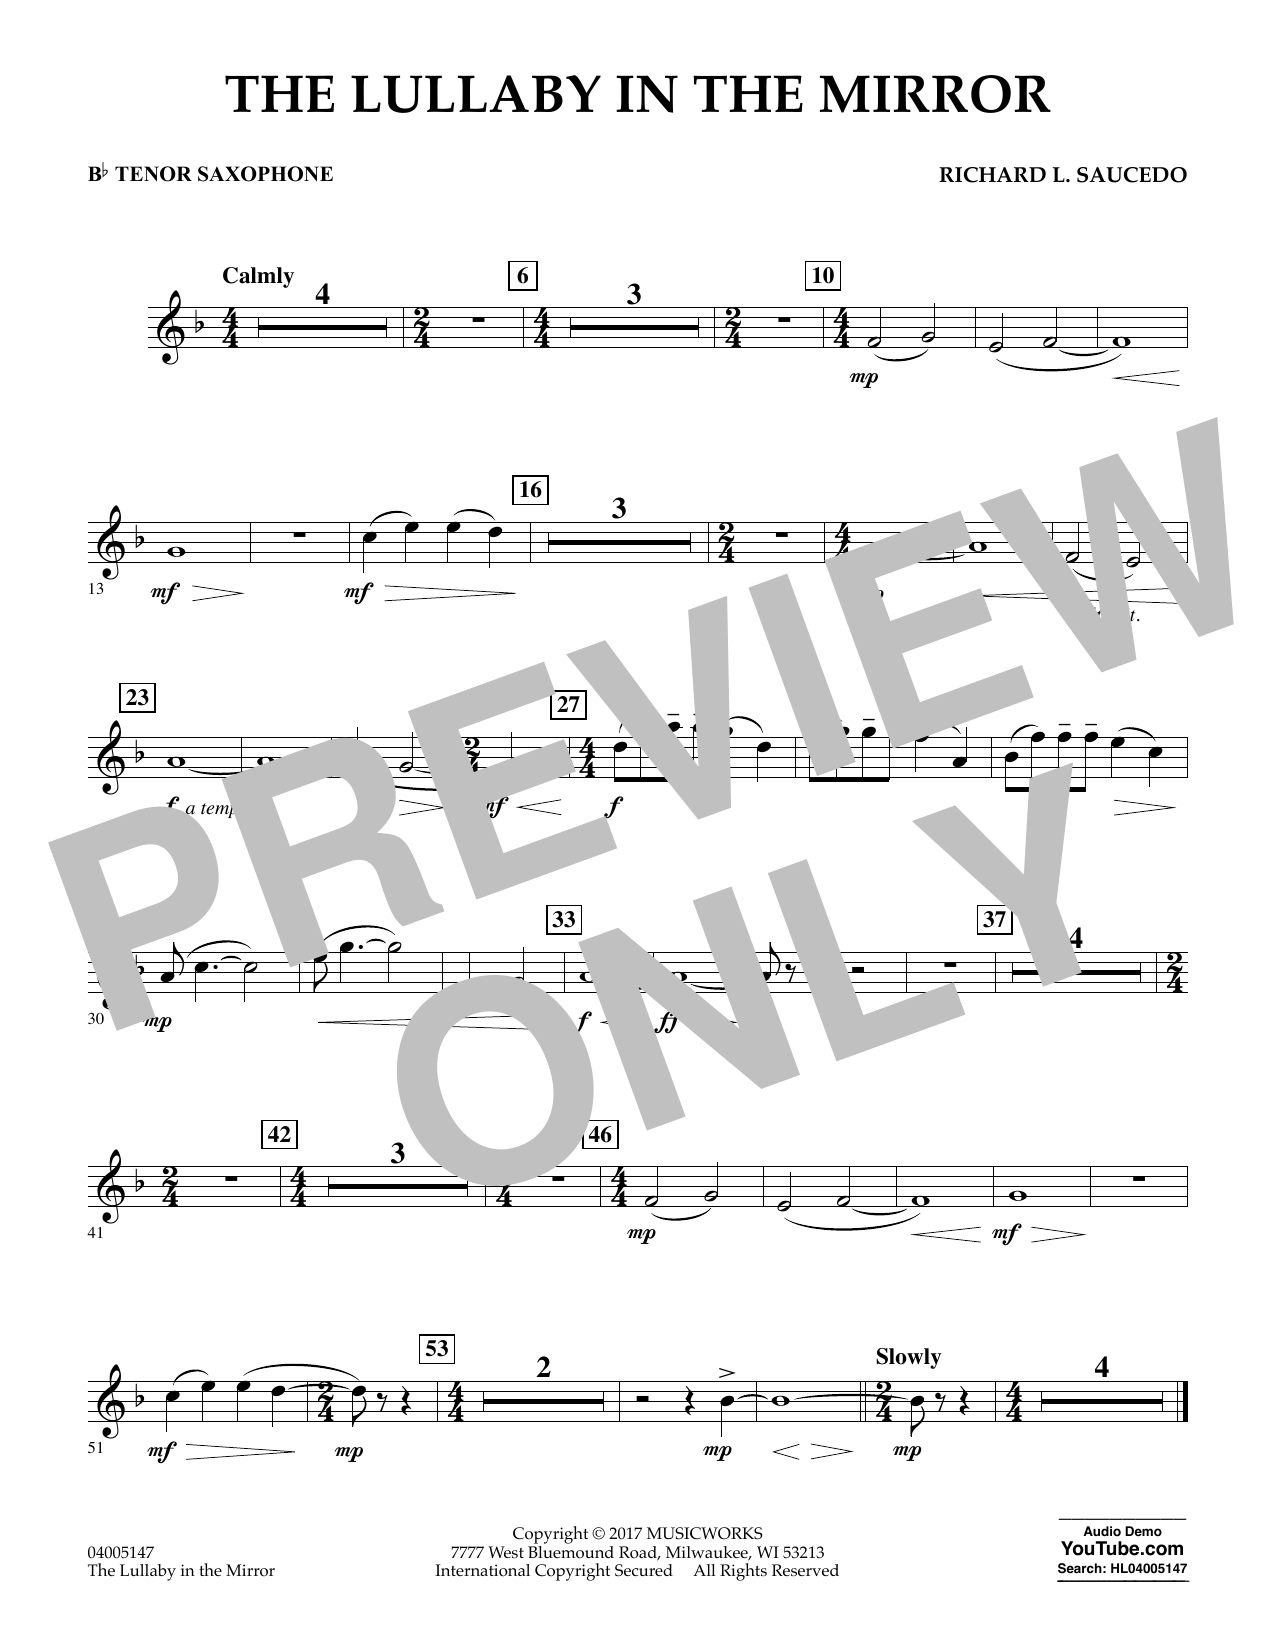 Richard L. Saucedo The Lullaby in the Mirror - Bb Tenor Saxophone sheet music notes and chords. Download Printable PDF.